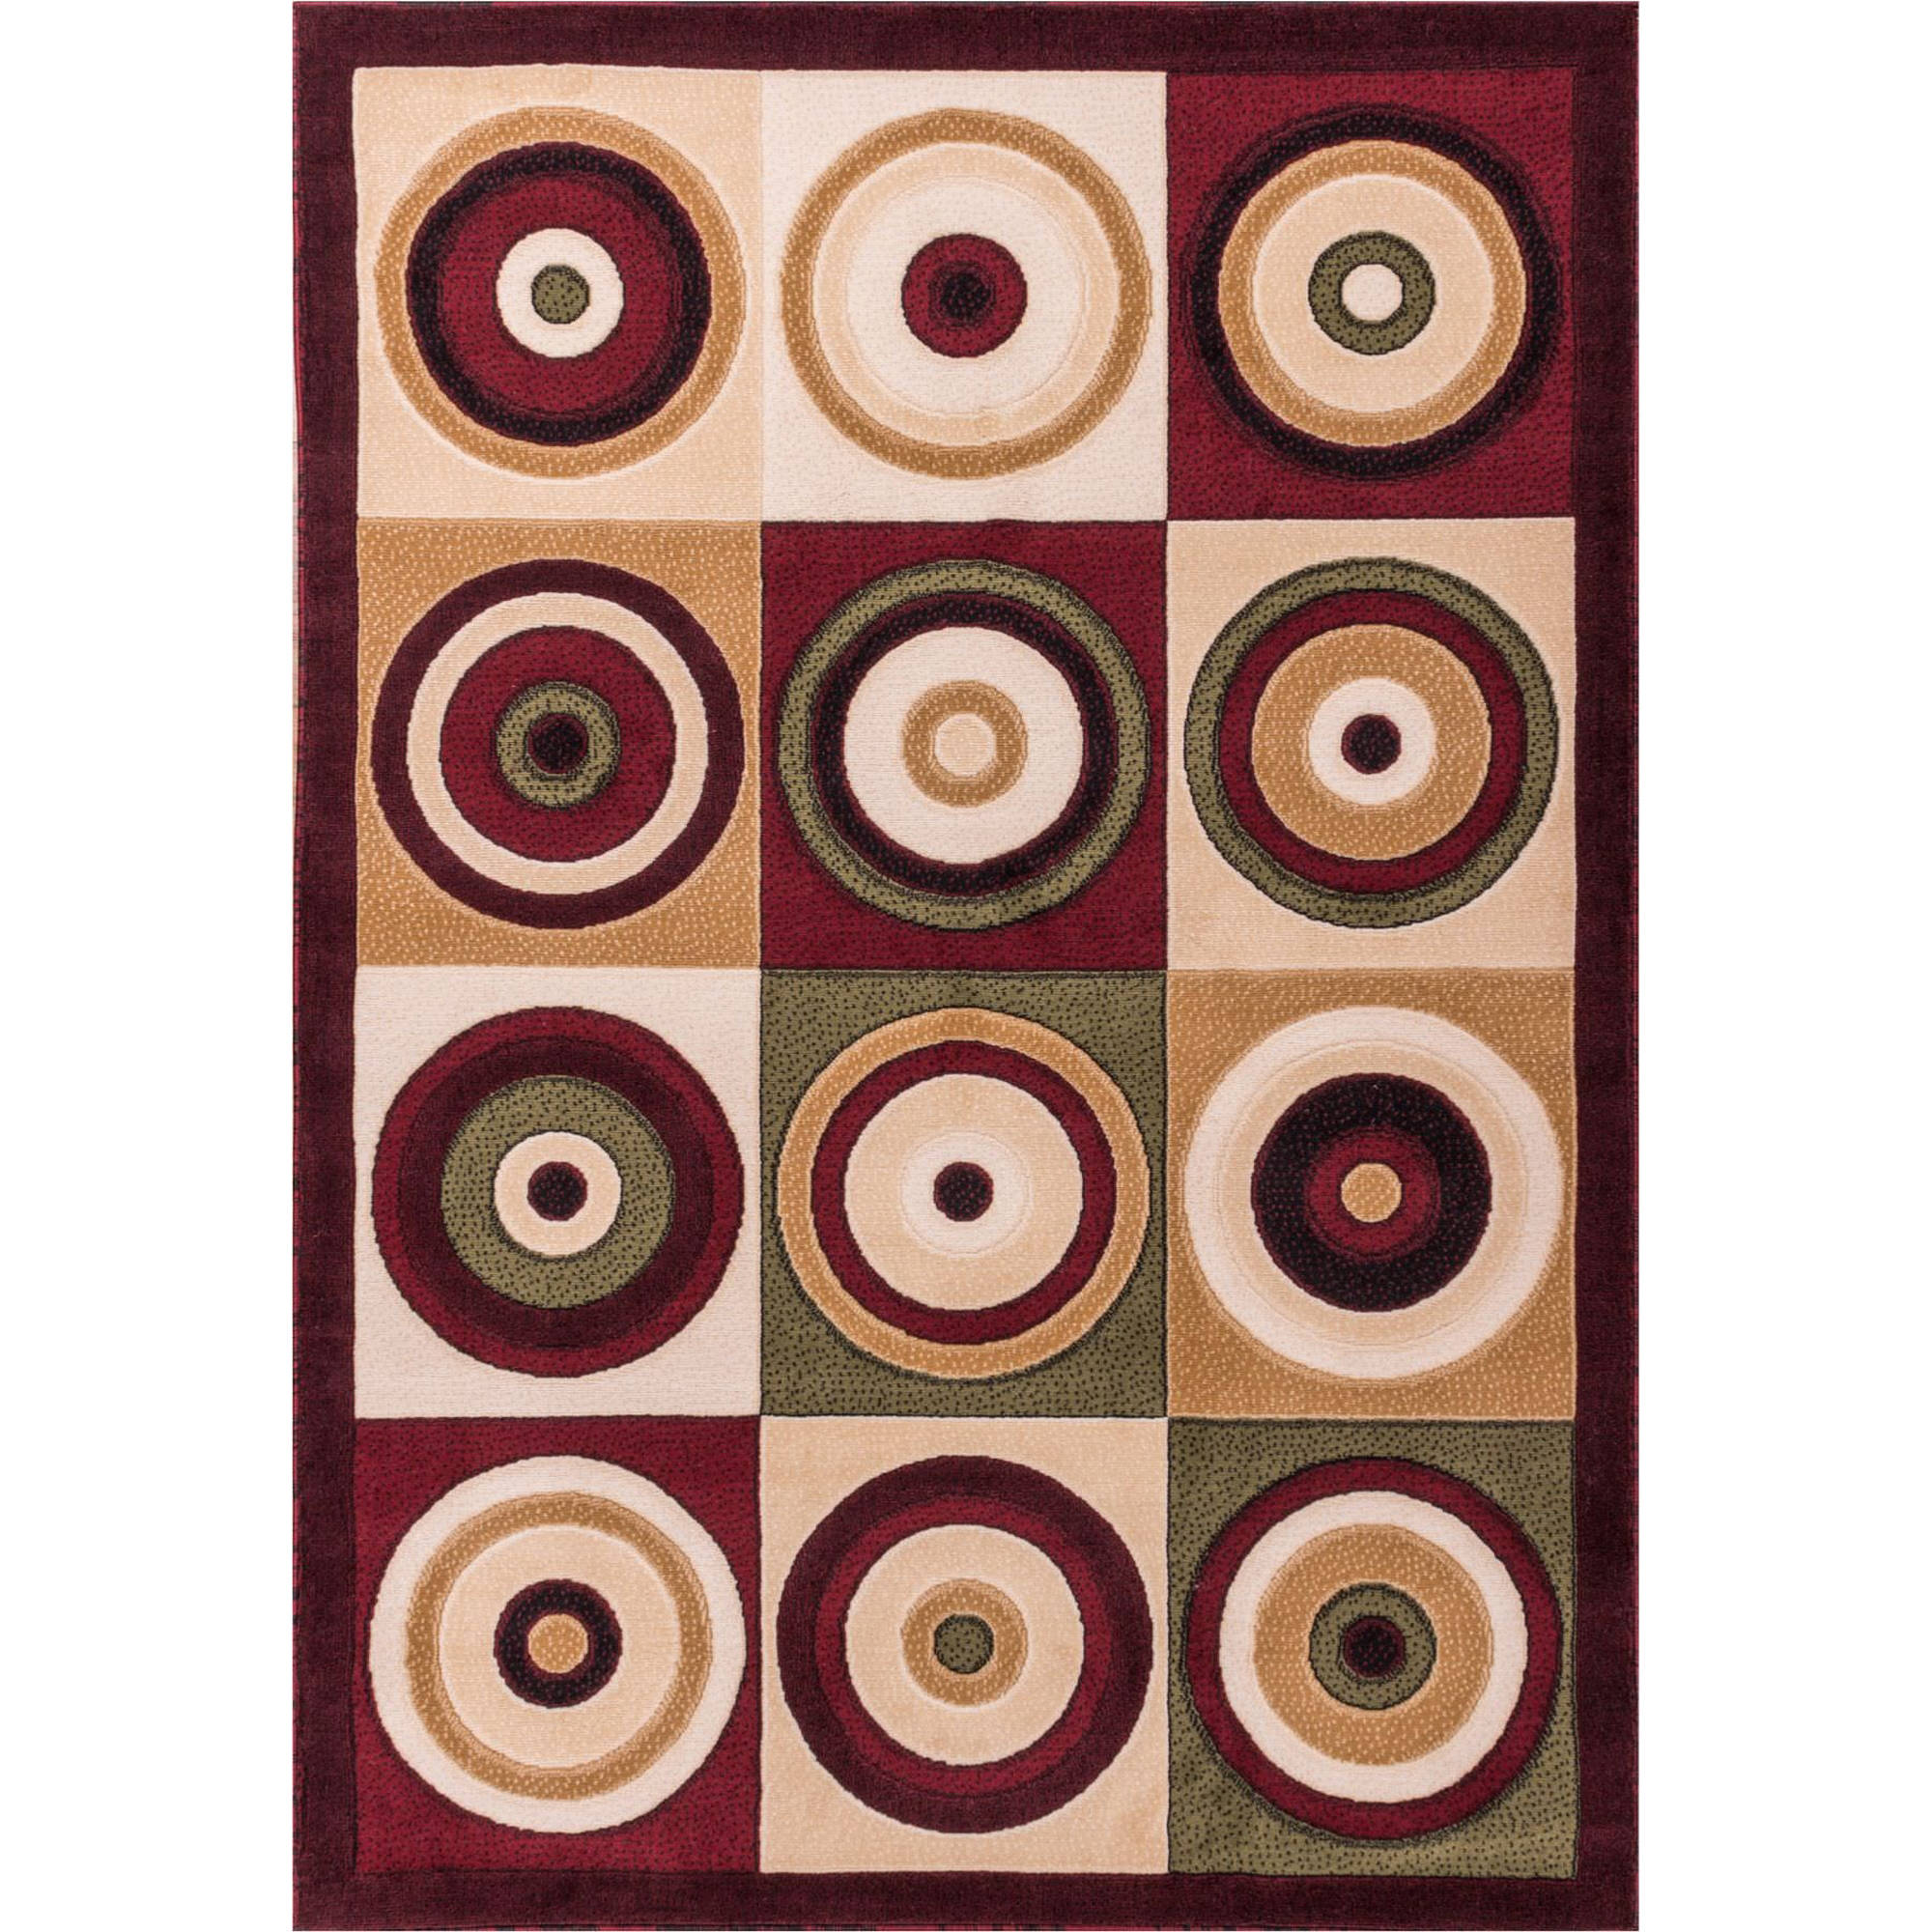 "Well Woven Dulcet Commerce Modern Area Rug, Multi, 9'3"" x 12'6"""